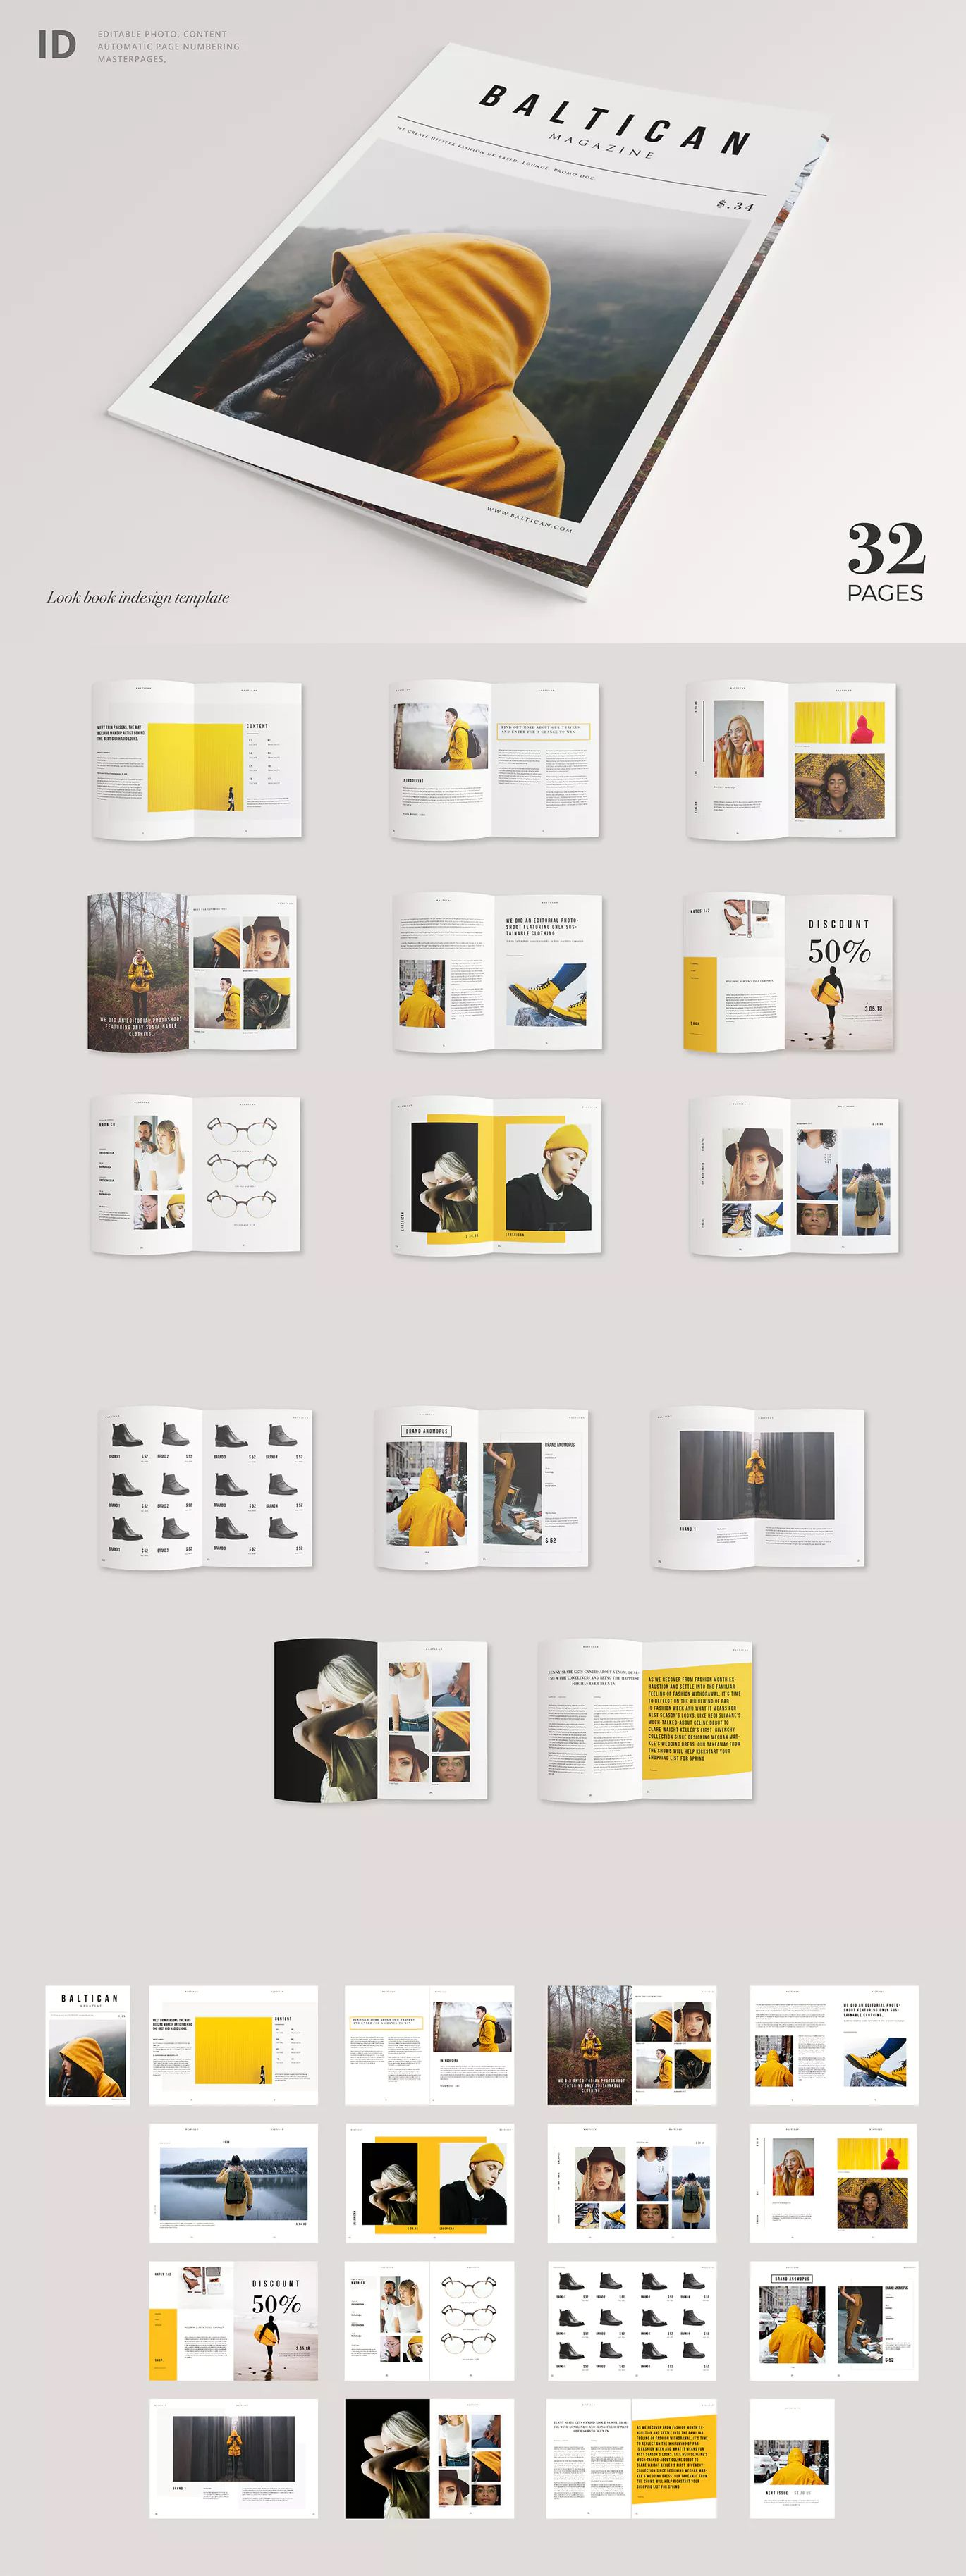 Magazine Template Indesign Indd A4 Size 0125 Bleed Cut